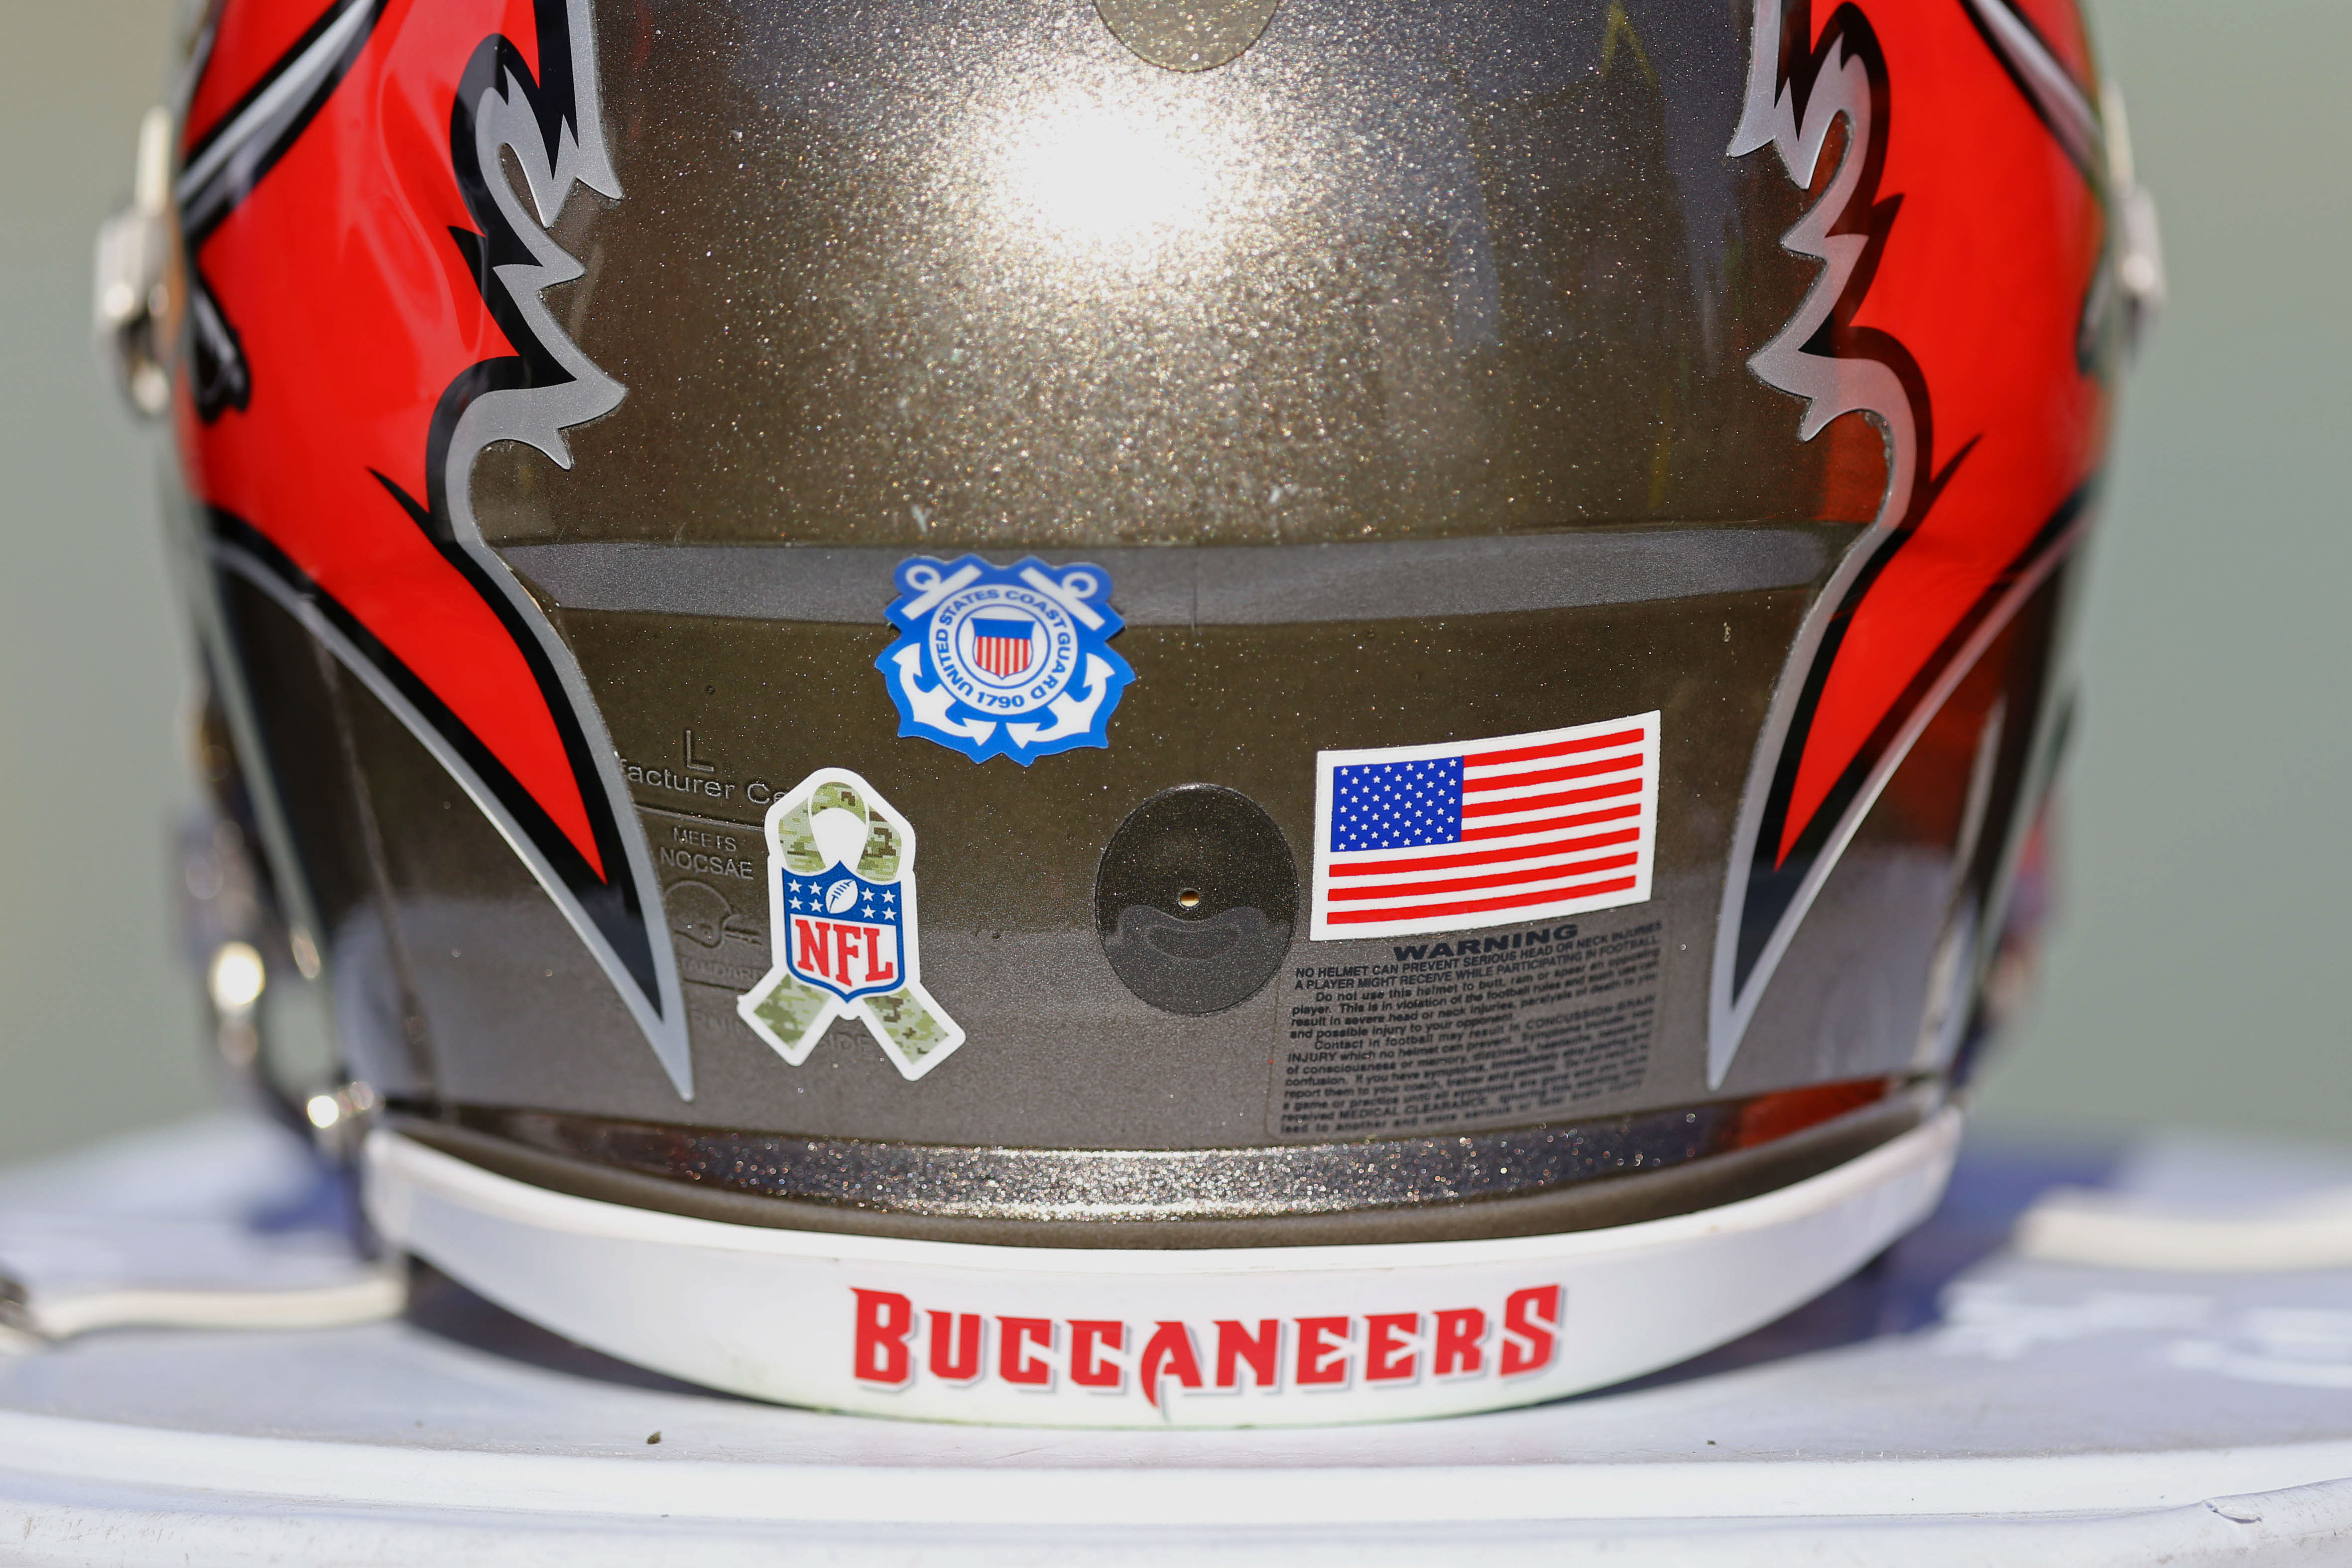 Nov 13, 2016; Tampa, FL, USA; A view of a Salute to Service, United States Coast Guard, and American flag sticker on a Tampa Bay Buccaneers helmet at Raymond James Stadium. The Buccaneers won 36-10. Mandatory Credit: Aaron Doster-USA TODAY Sports